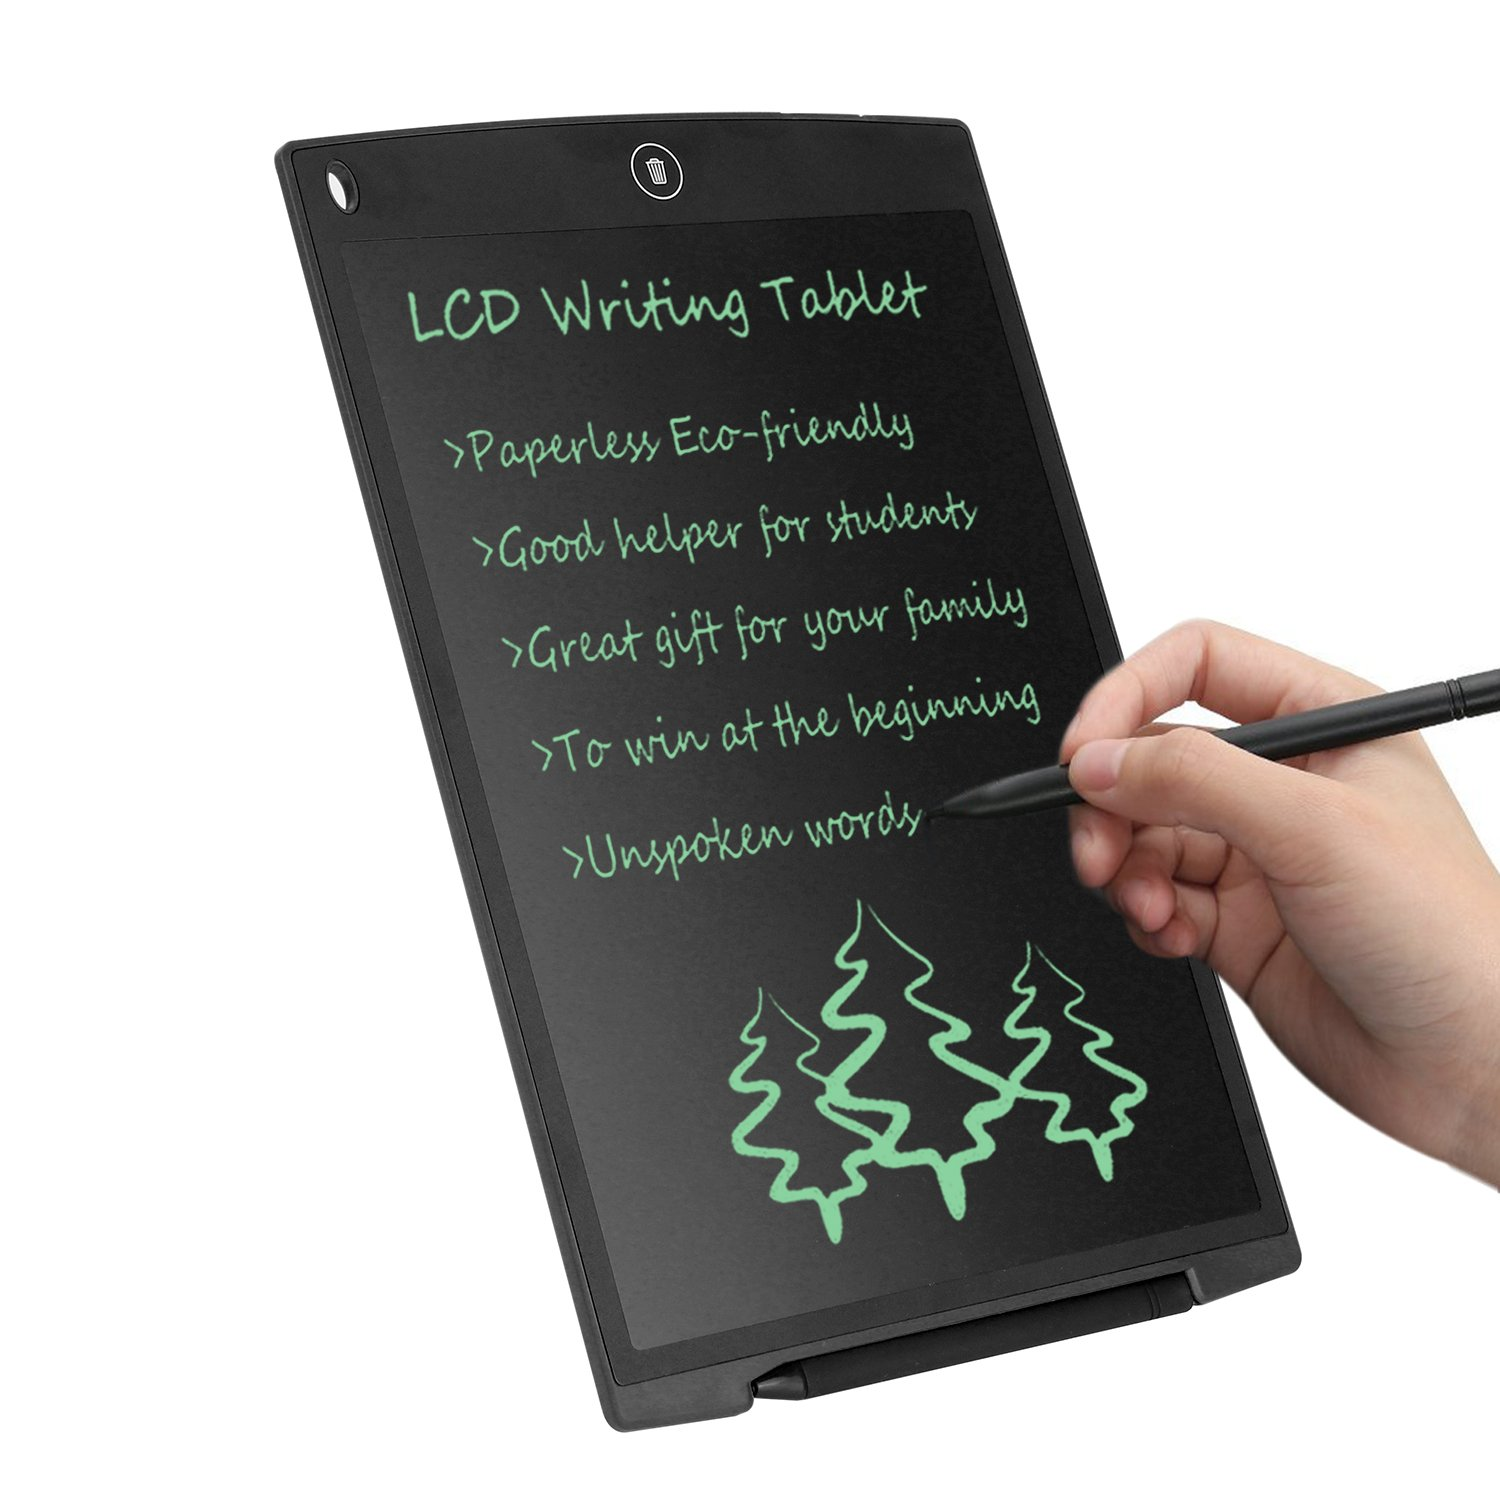 LCD Writing Tablet 12 Inch CHAOCHI Electronic Drawing Board Digital Doodle Pad with Erase Button, Gift for School Students Kids Present for Friends Birthday Office Speech Difficulties Take Note, Black